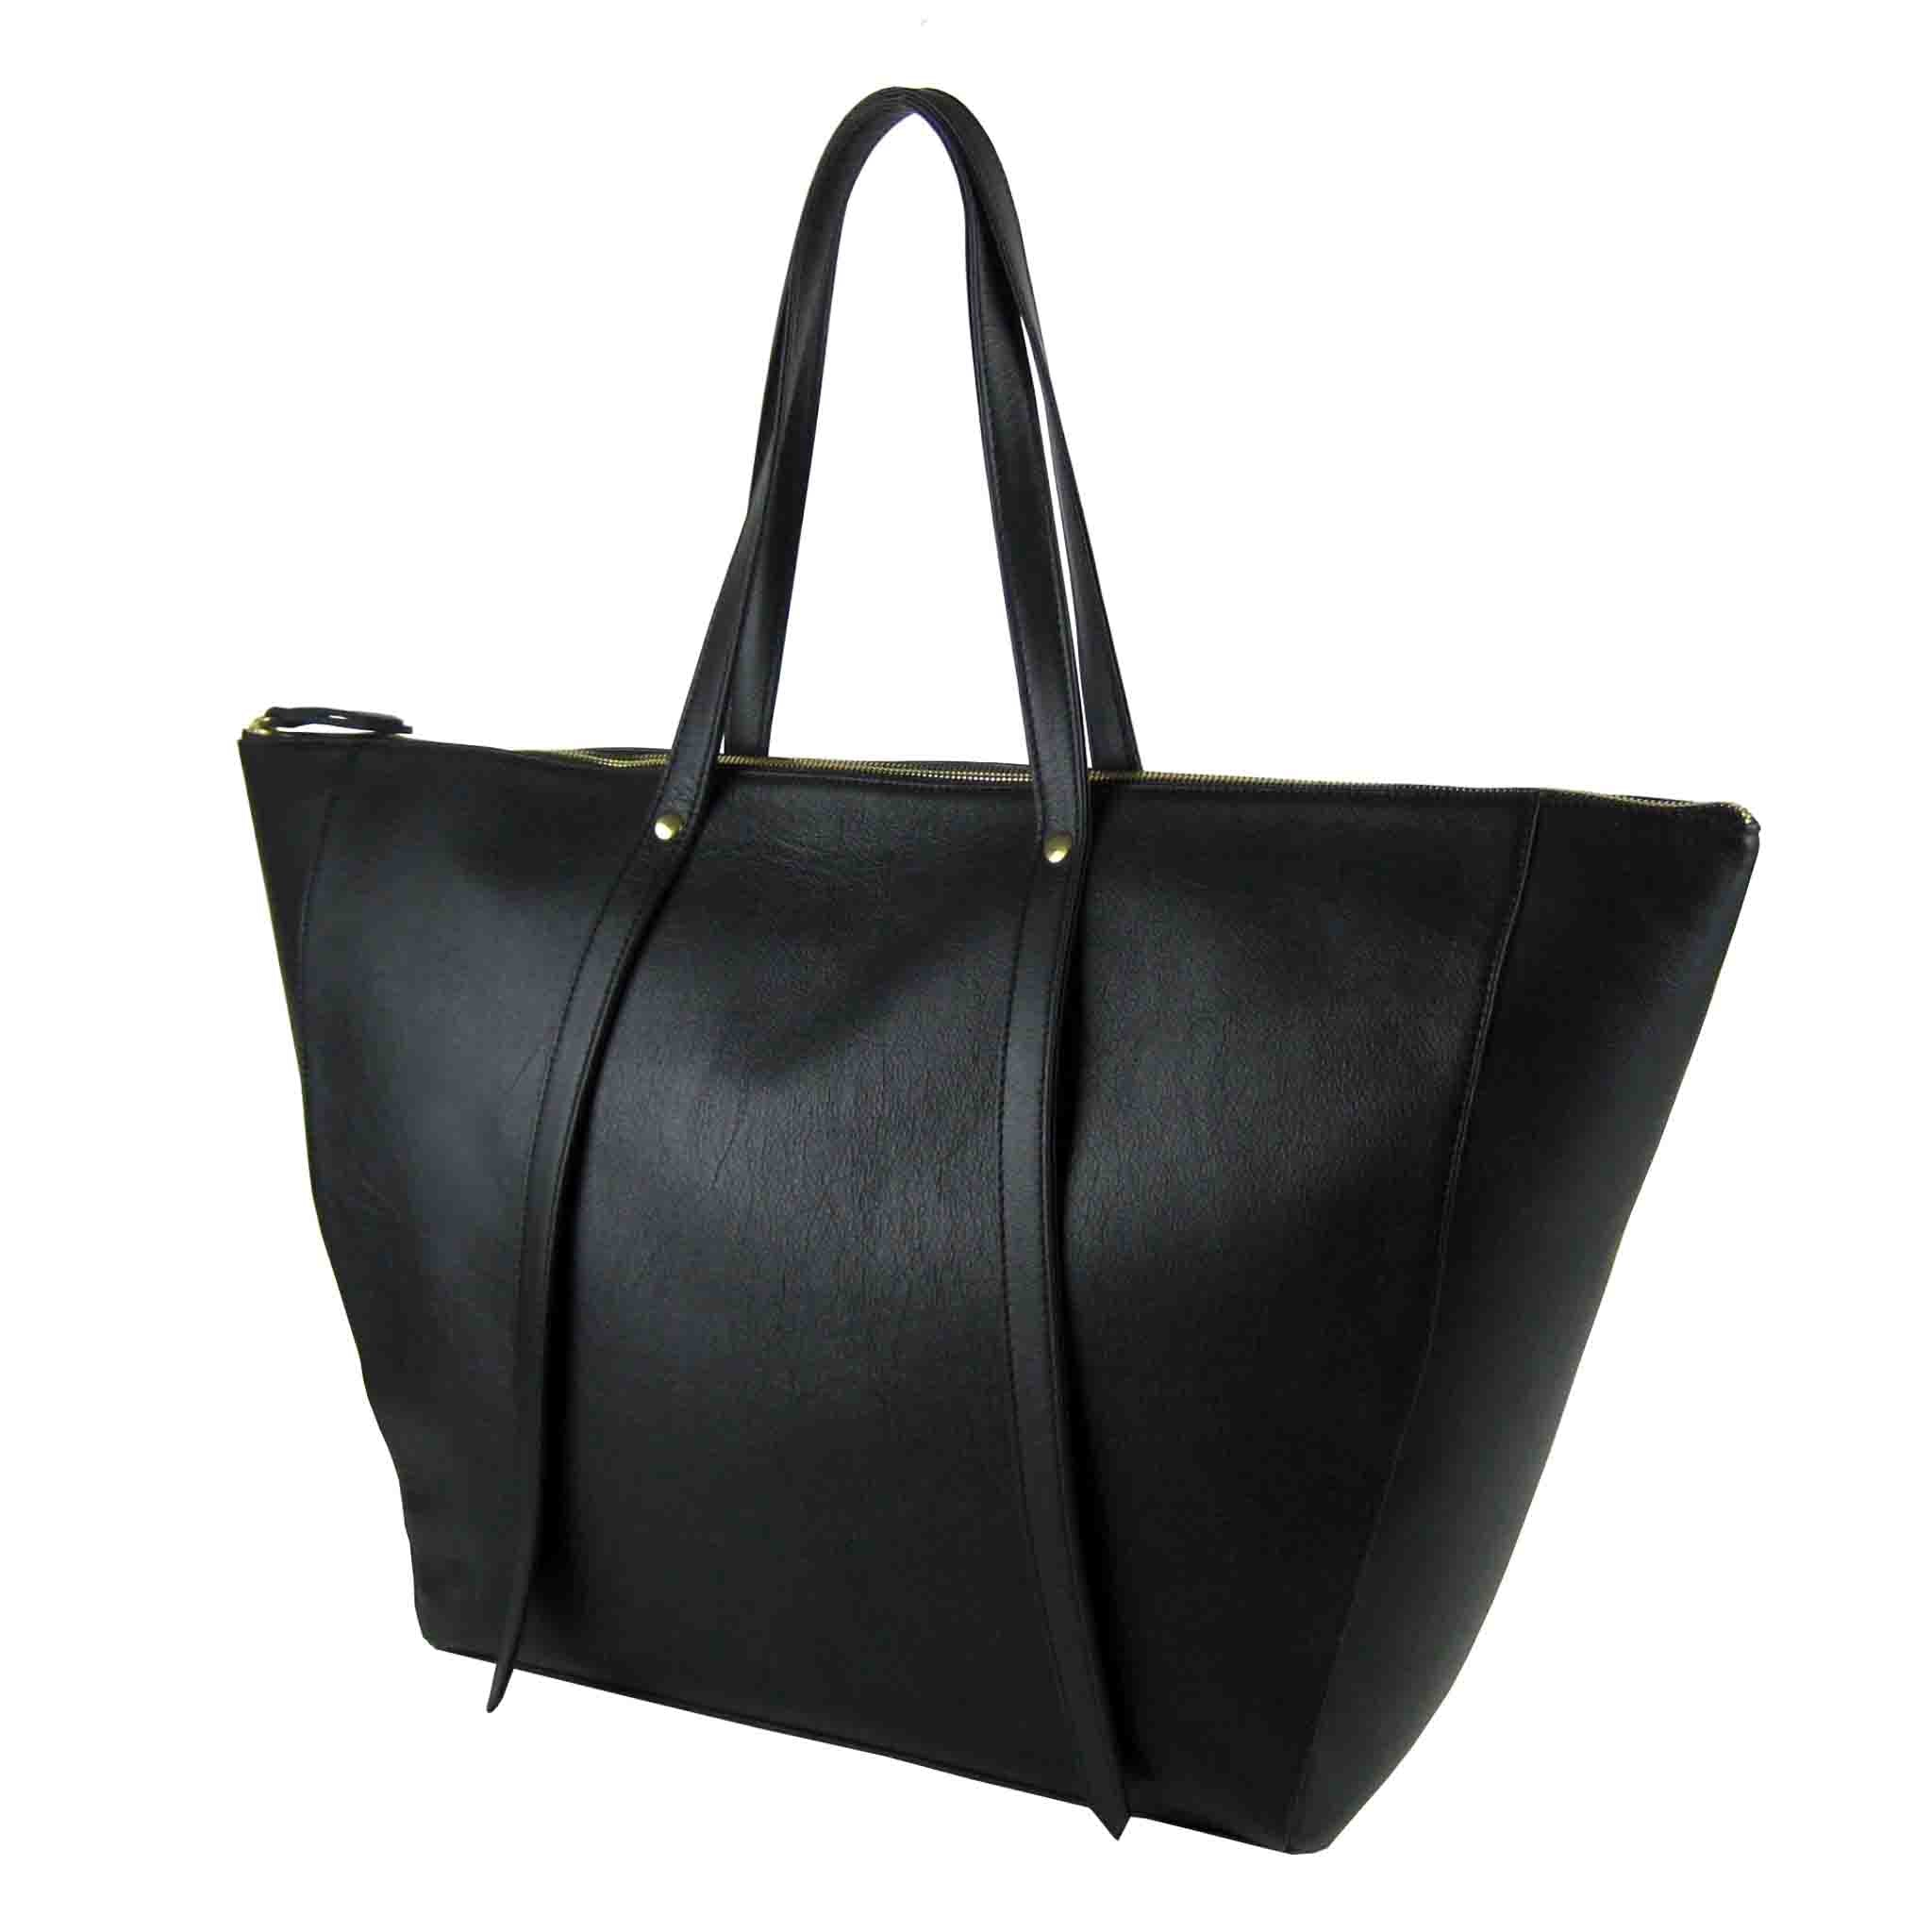 BLACK LEATHER TOTE WOMEN'S BAG KAUFER